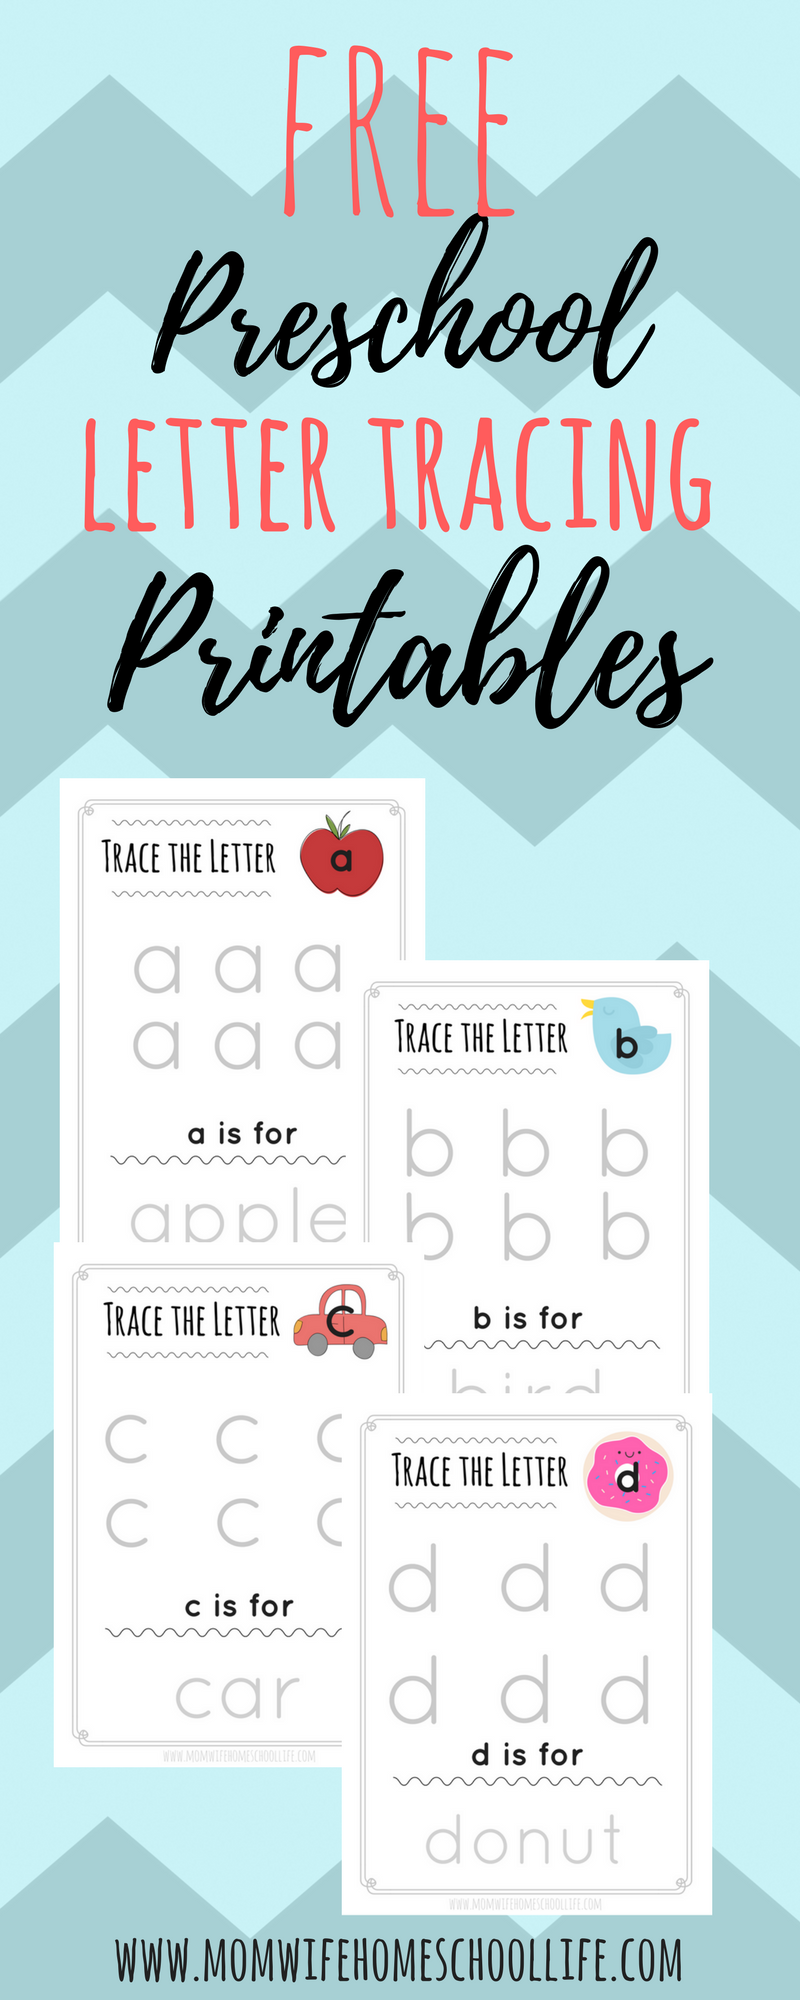 Trace the Letter: Lowercase Alphabet Tracing | daycare | Pinterest ...